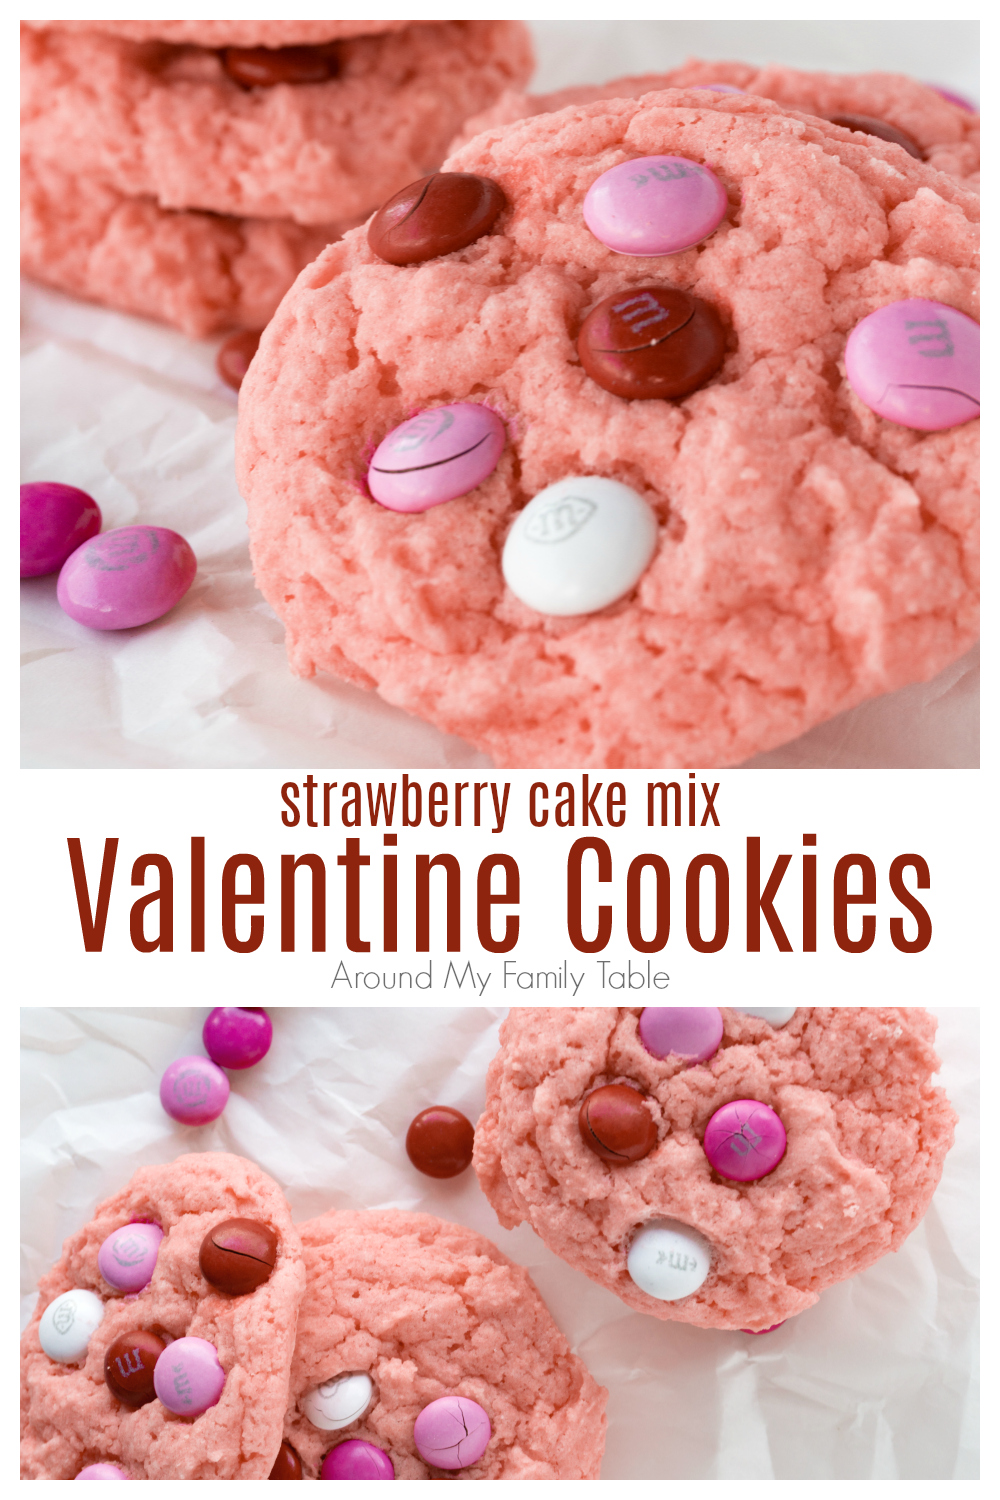 Strawberry Cake Mix Valentine Cookies collage